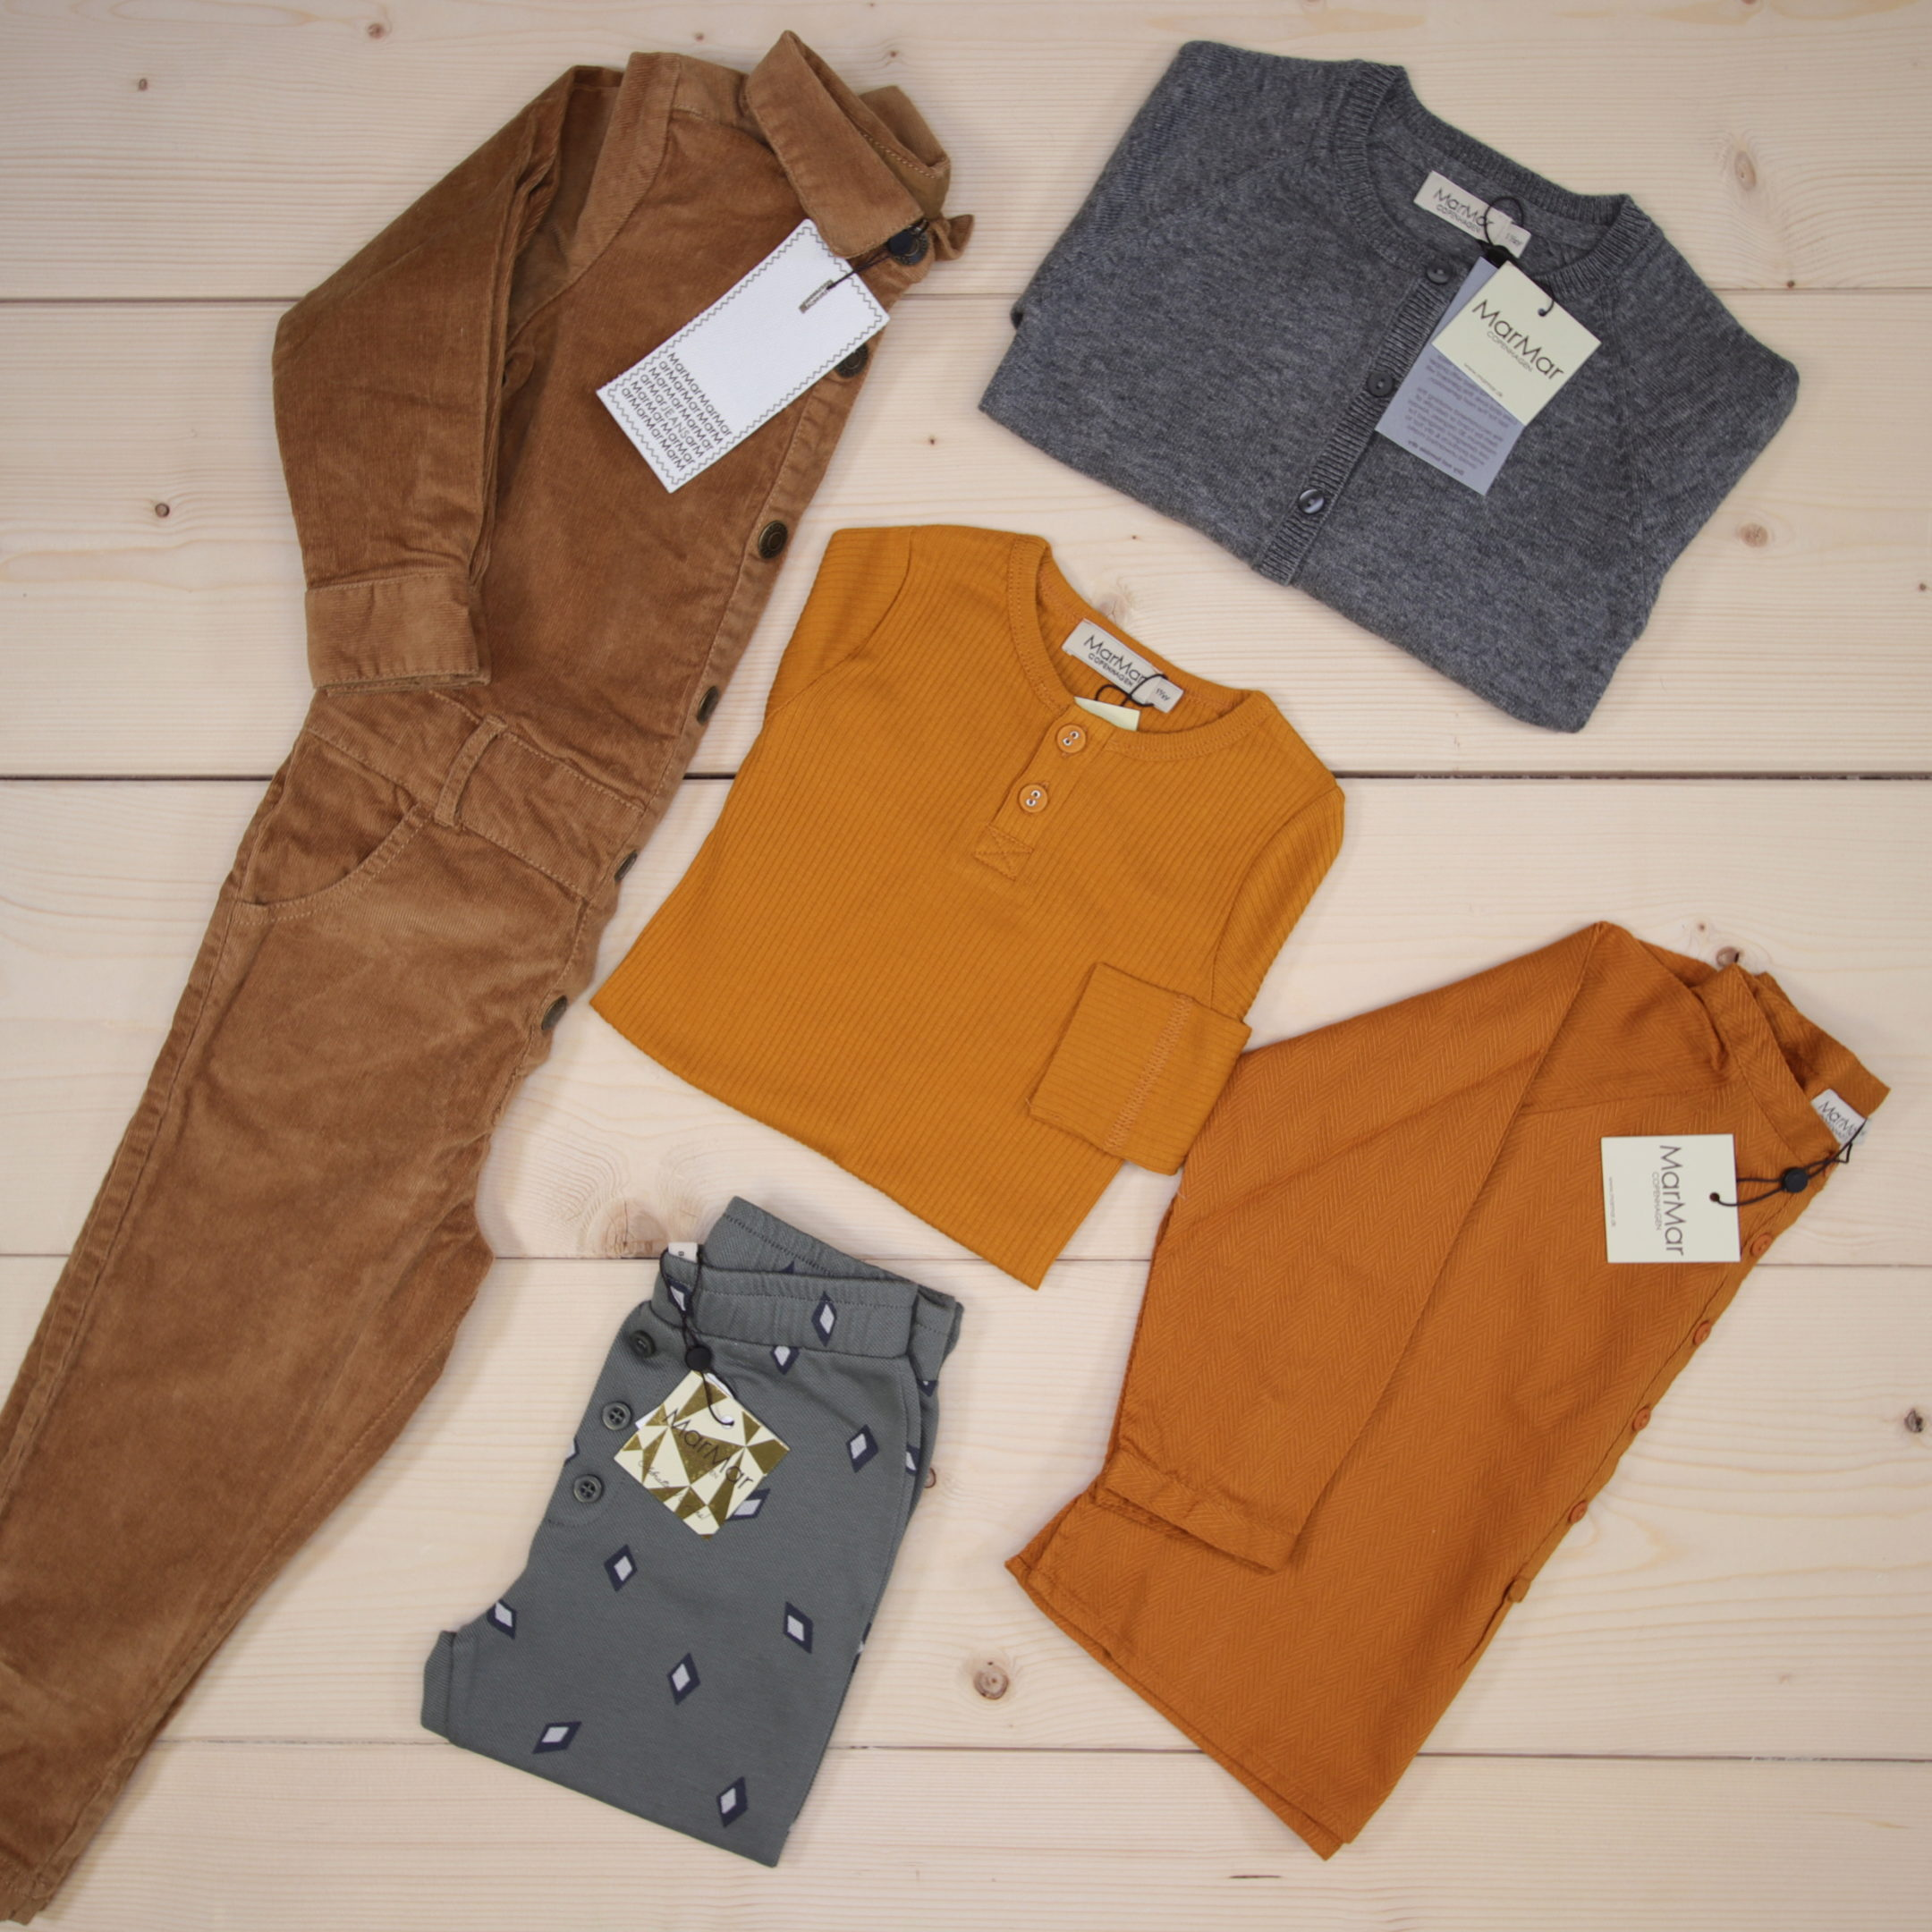 This is a 1500 NOK* Småkassen that we prepared for a boy  in the styles cute, cool, and colorful in size 86